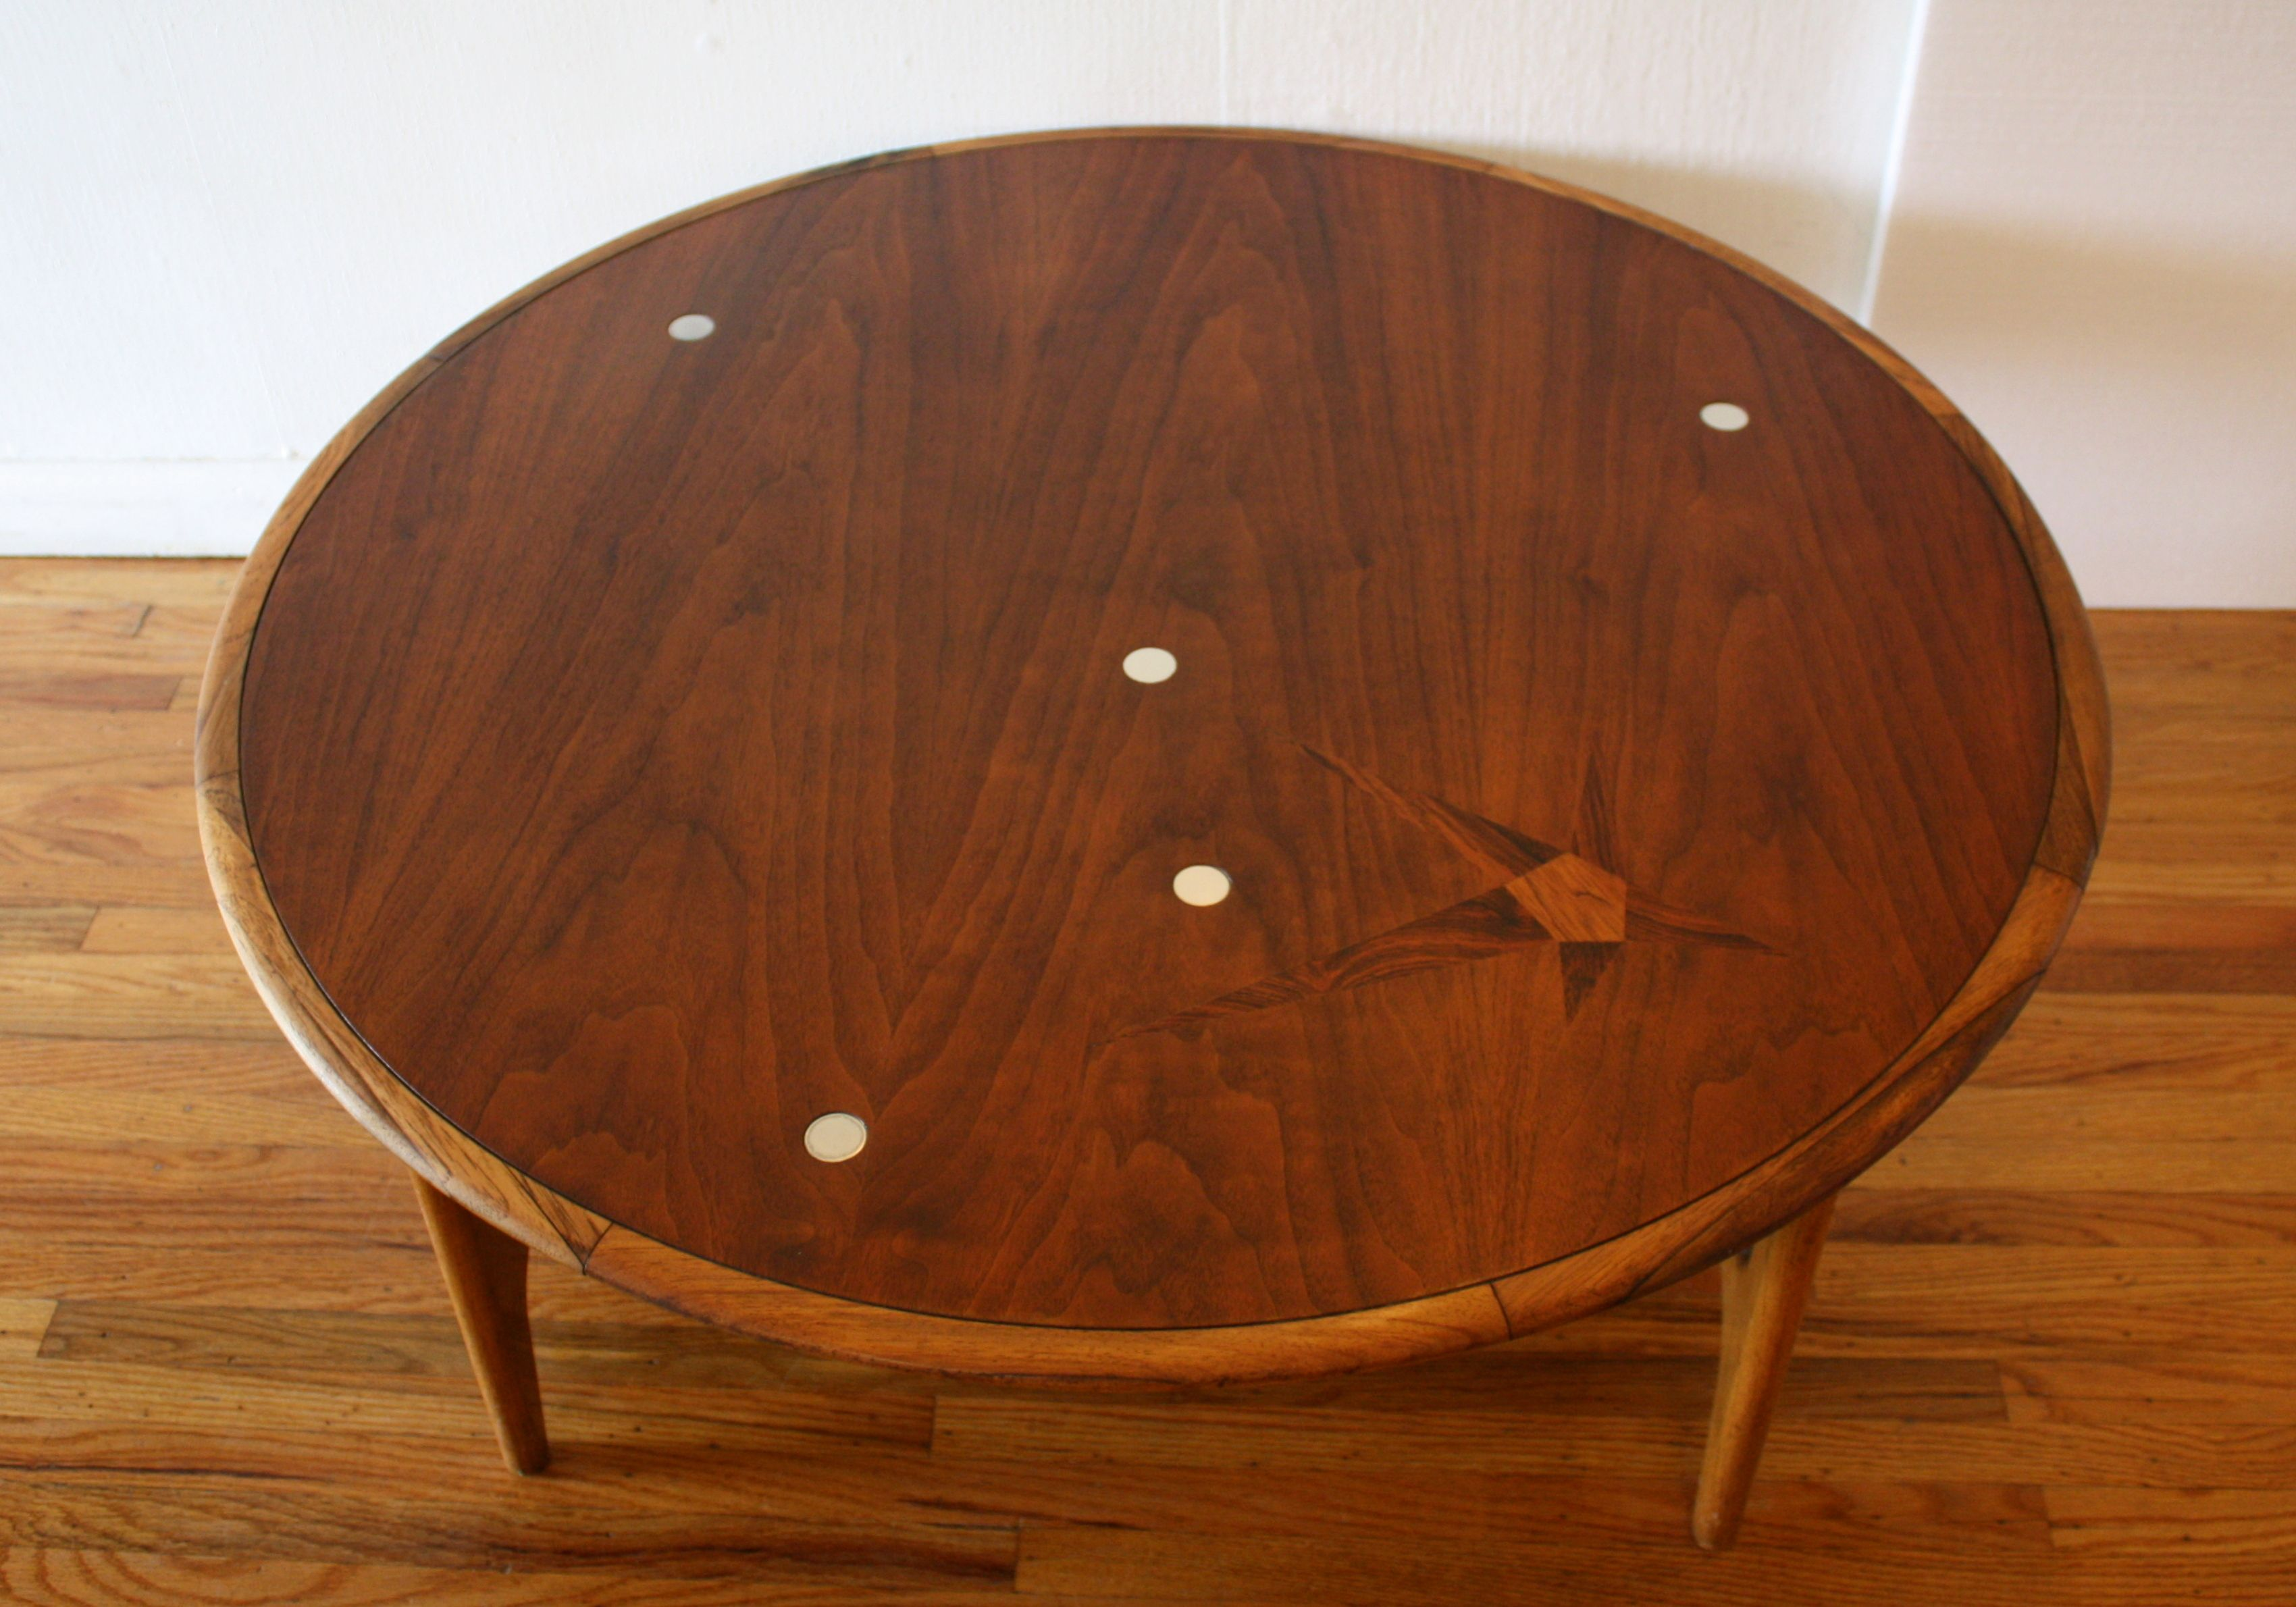 Picked Vintage Round Coffee Table Modern Coffee Table Circle Coffee Tables [ 2380 x 3400 Pixel ]